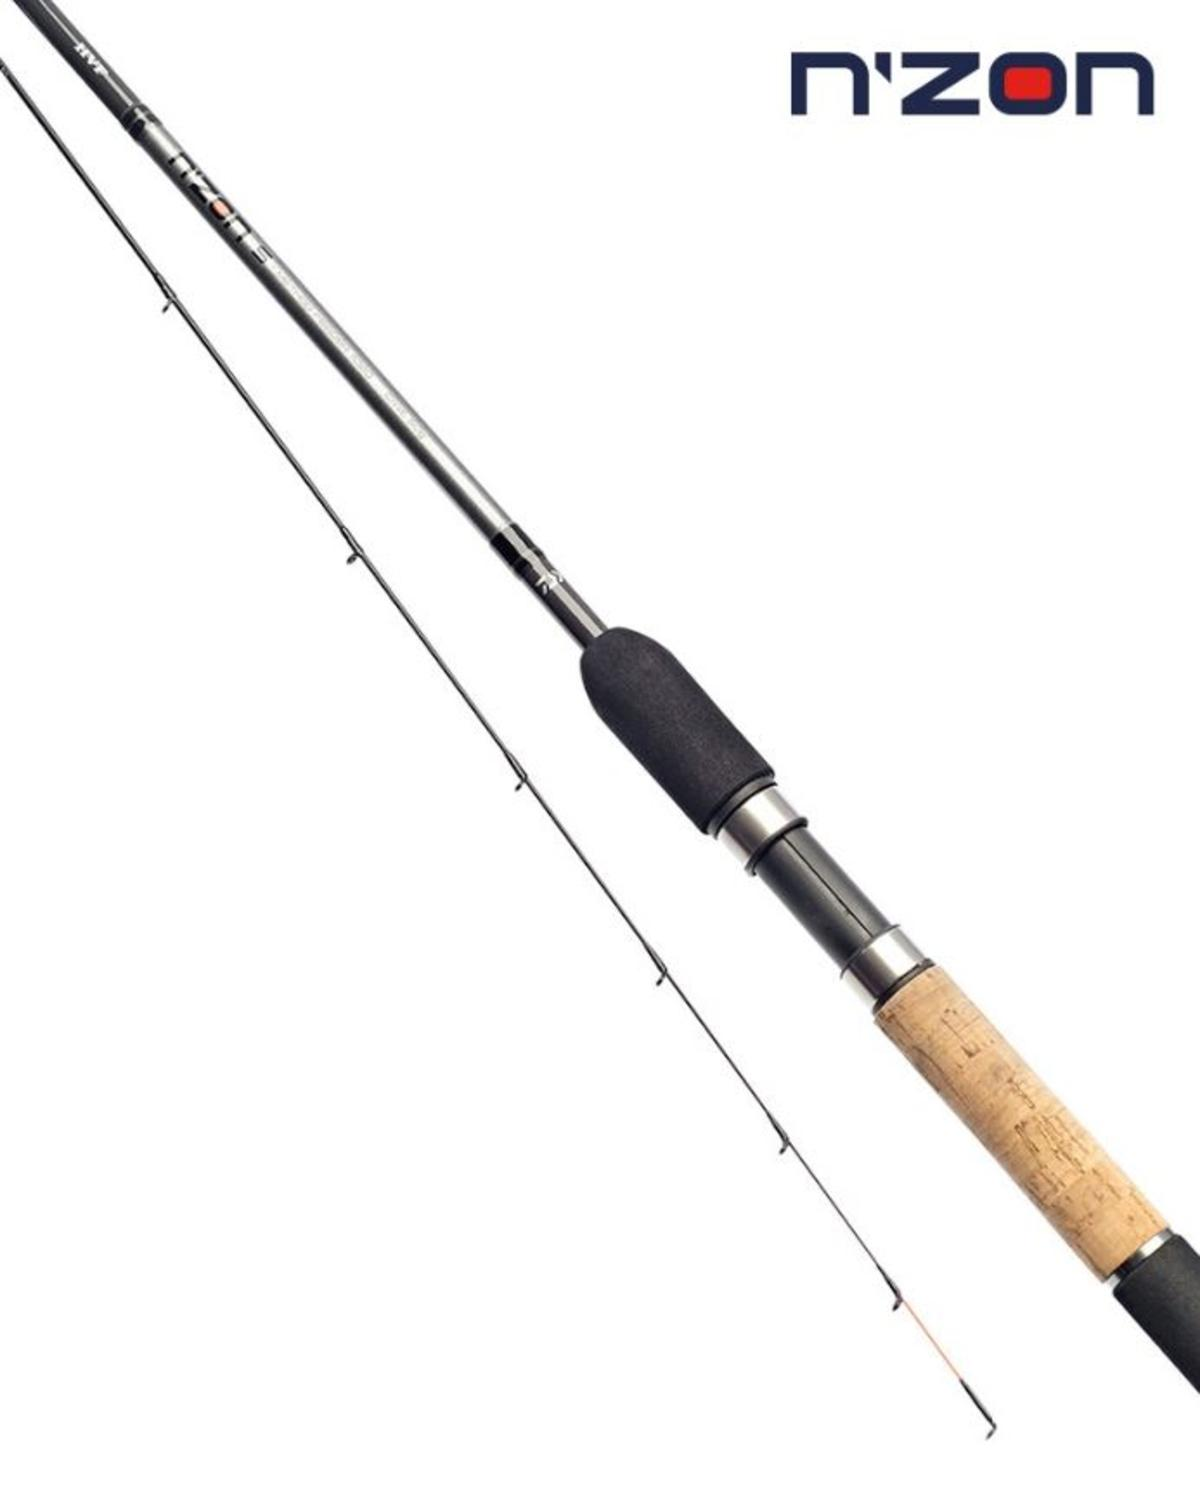 New Daiwa N'ZON S Feeder / Quiver Fishing Rods - All Models